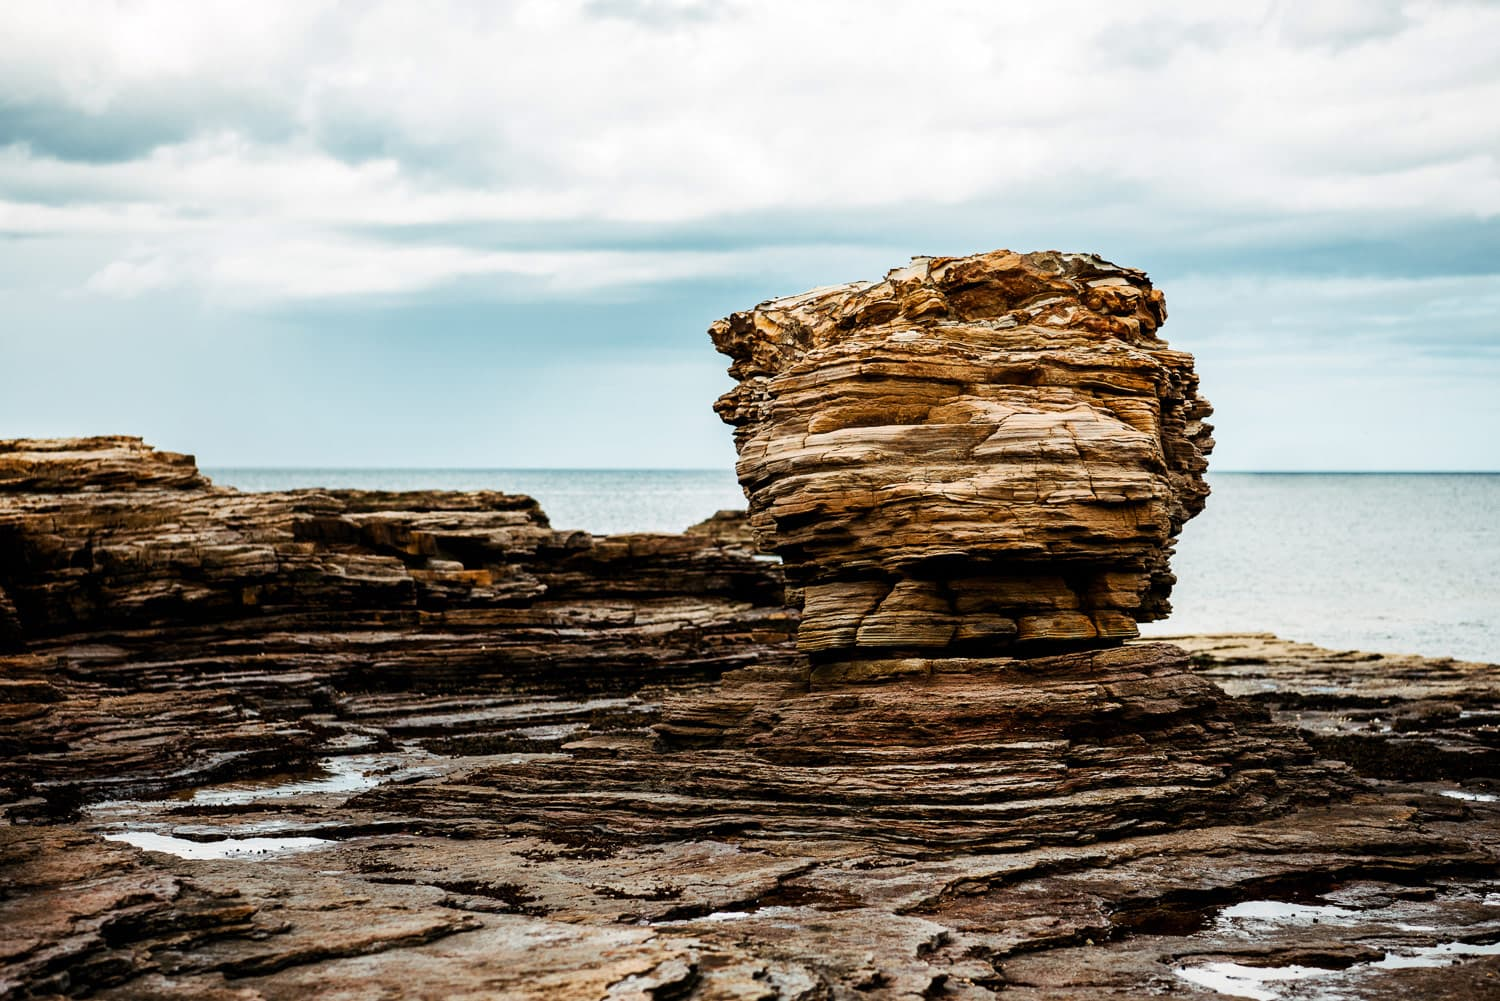 Amazing rock formations off the John muir trail in Dunbar Scotland